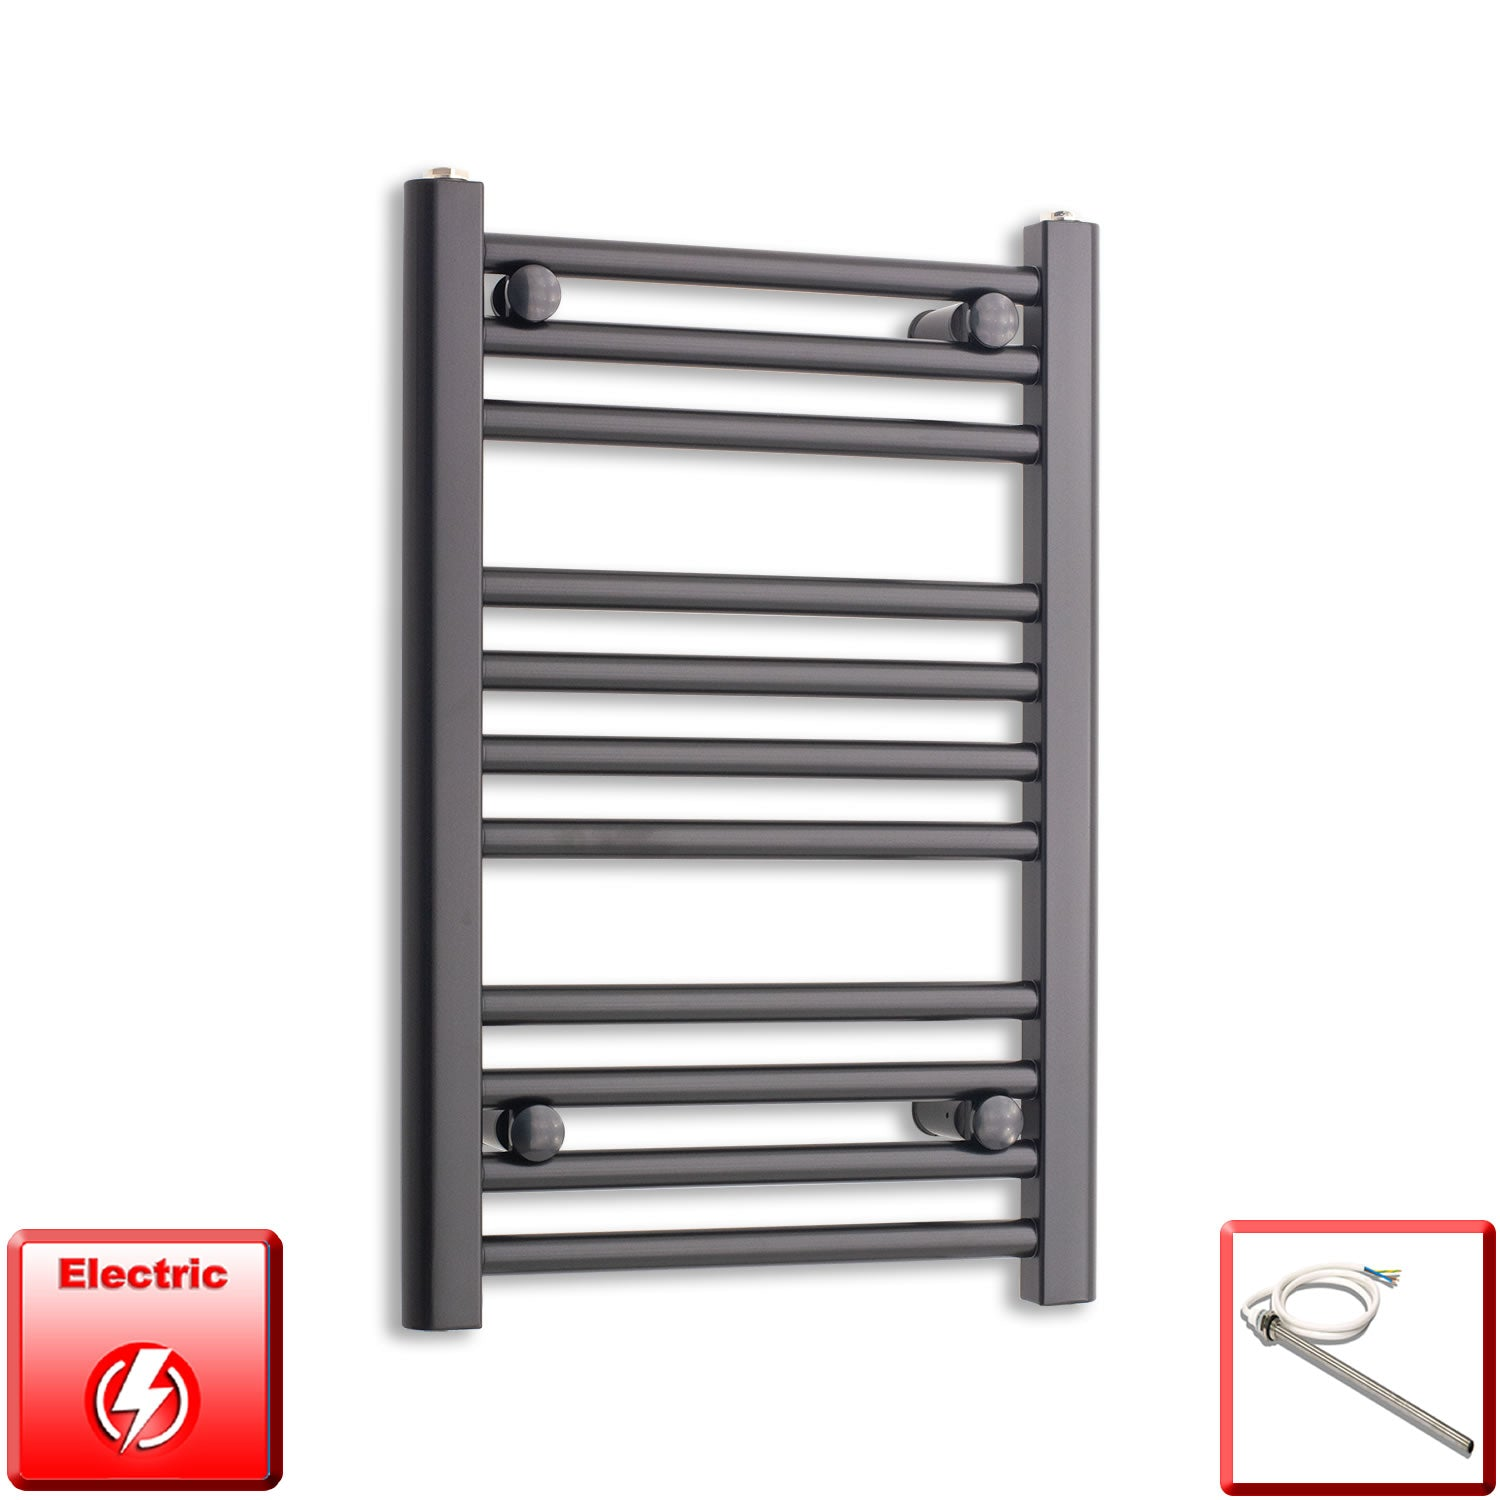 400mm Wide 600mm High Pre-Filled Black Electric Towel Rail Radiator With Single Heat Element